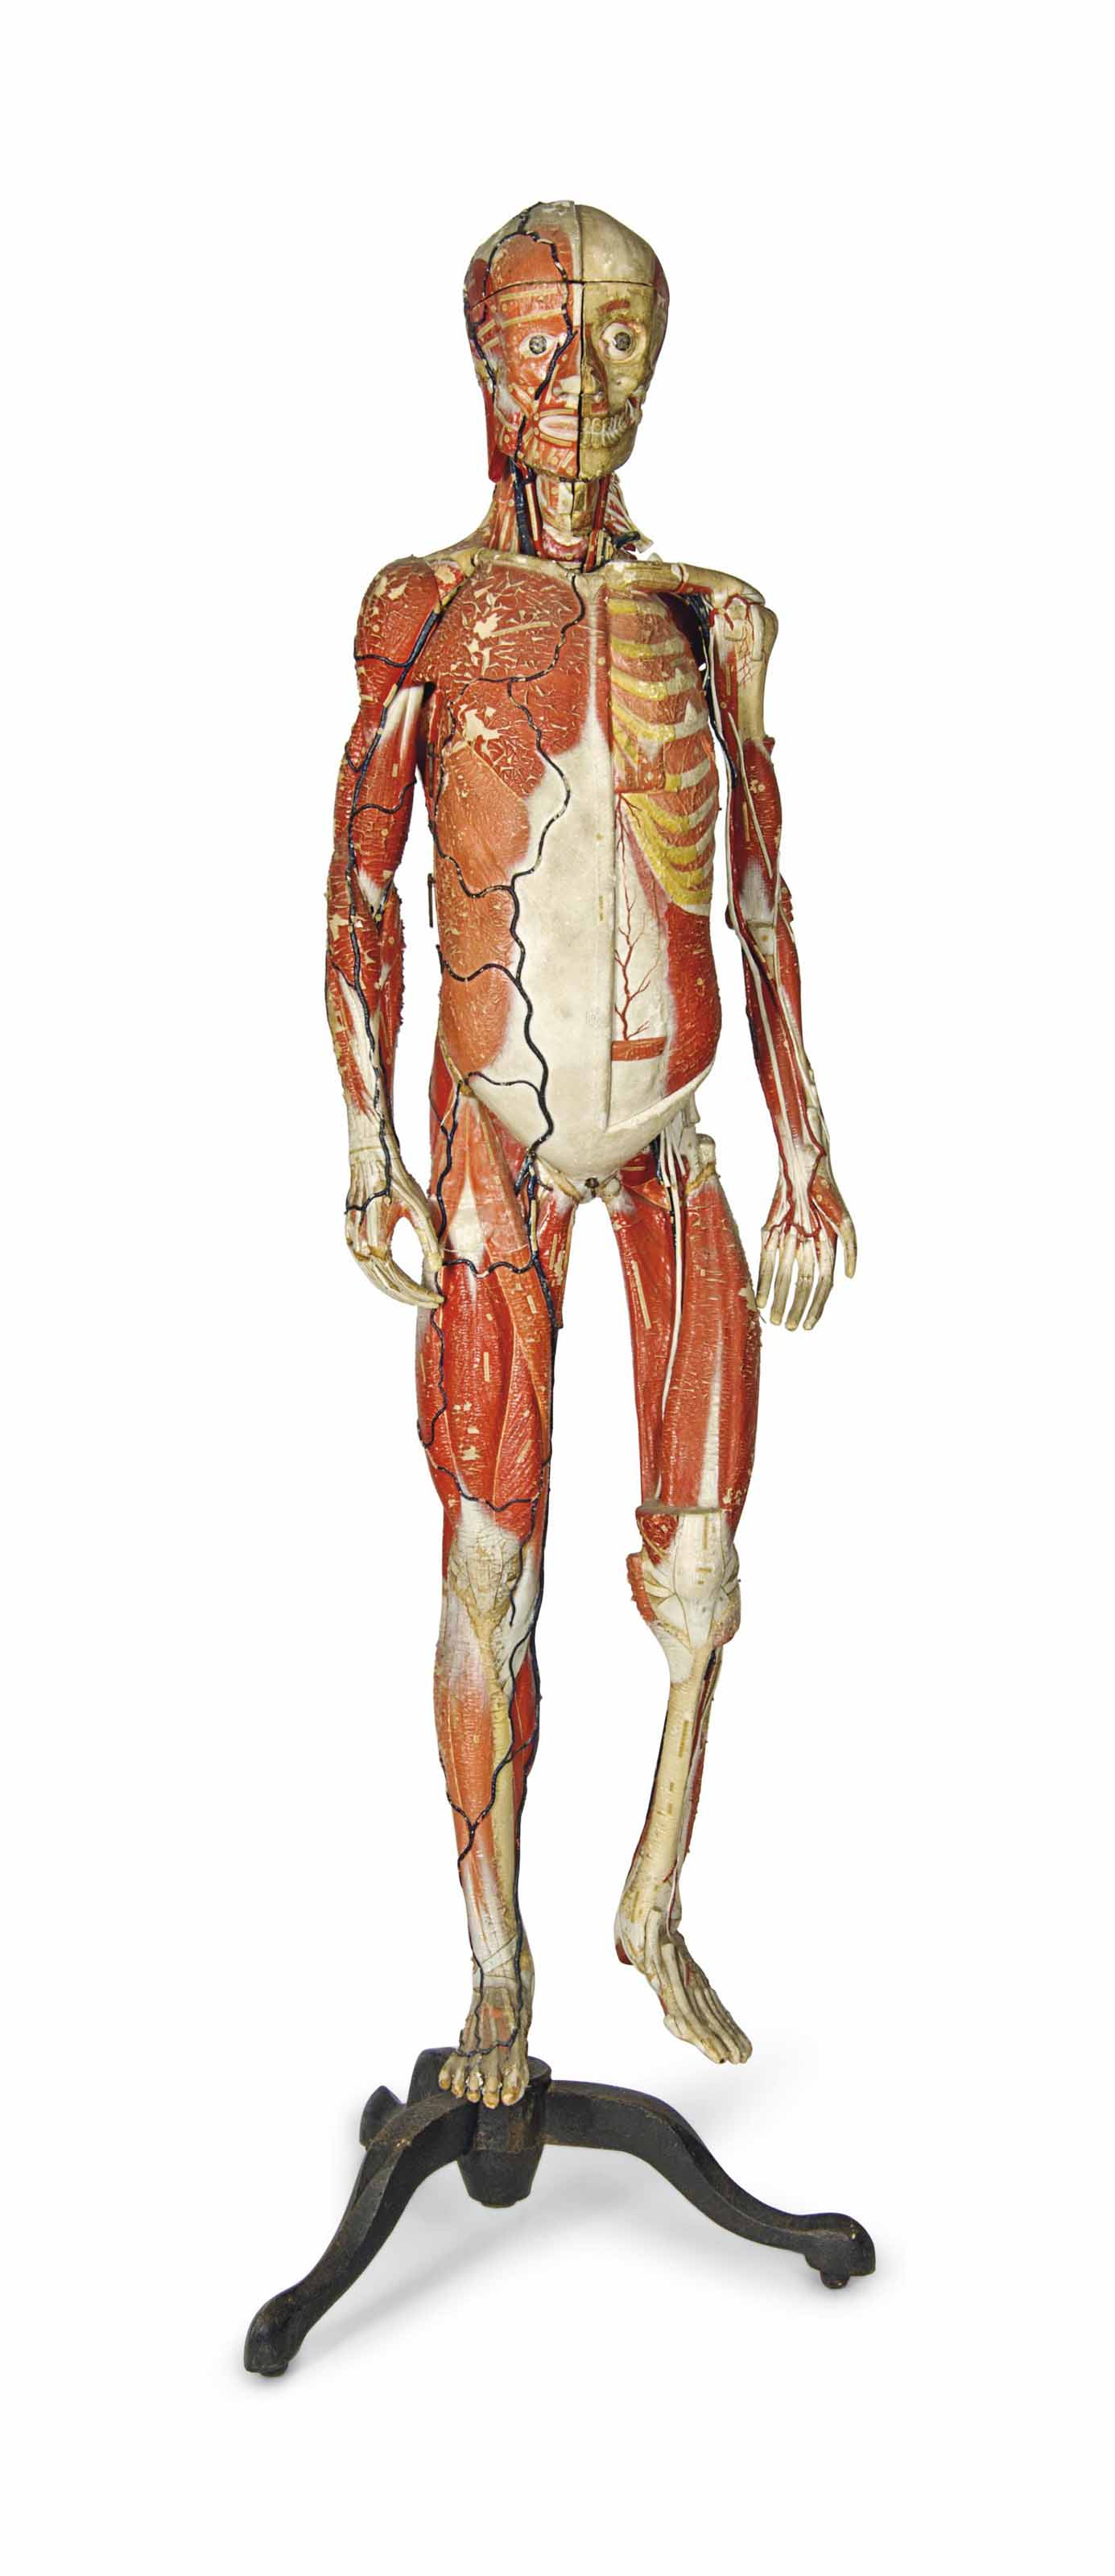 A FRENCH POLYCHROME DECORATED ANATOMIE CLASTIQUE OF A HUMAN FIGURE